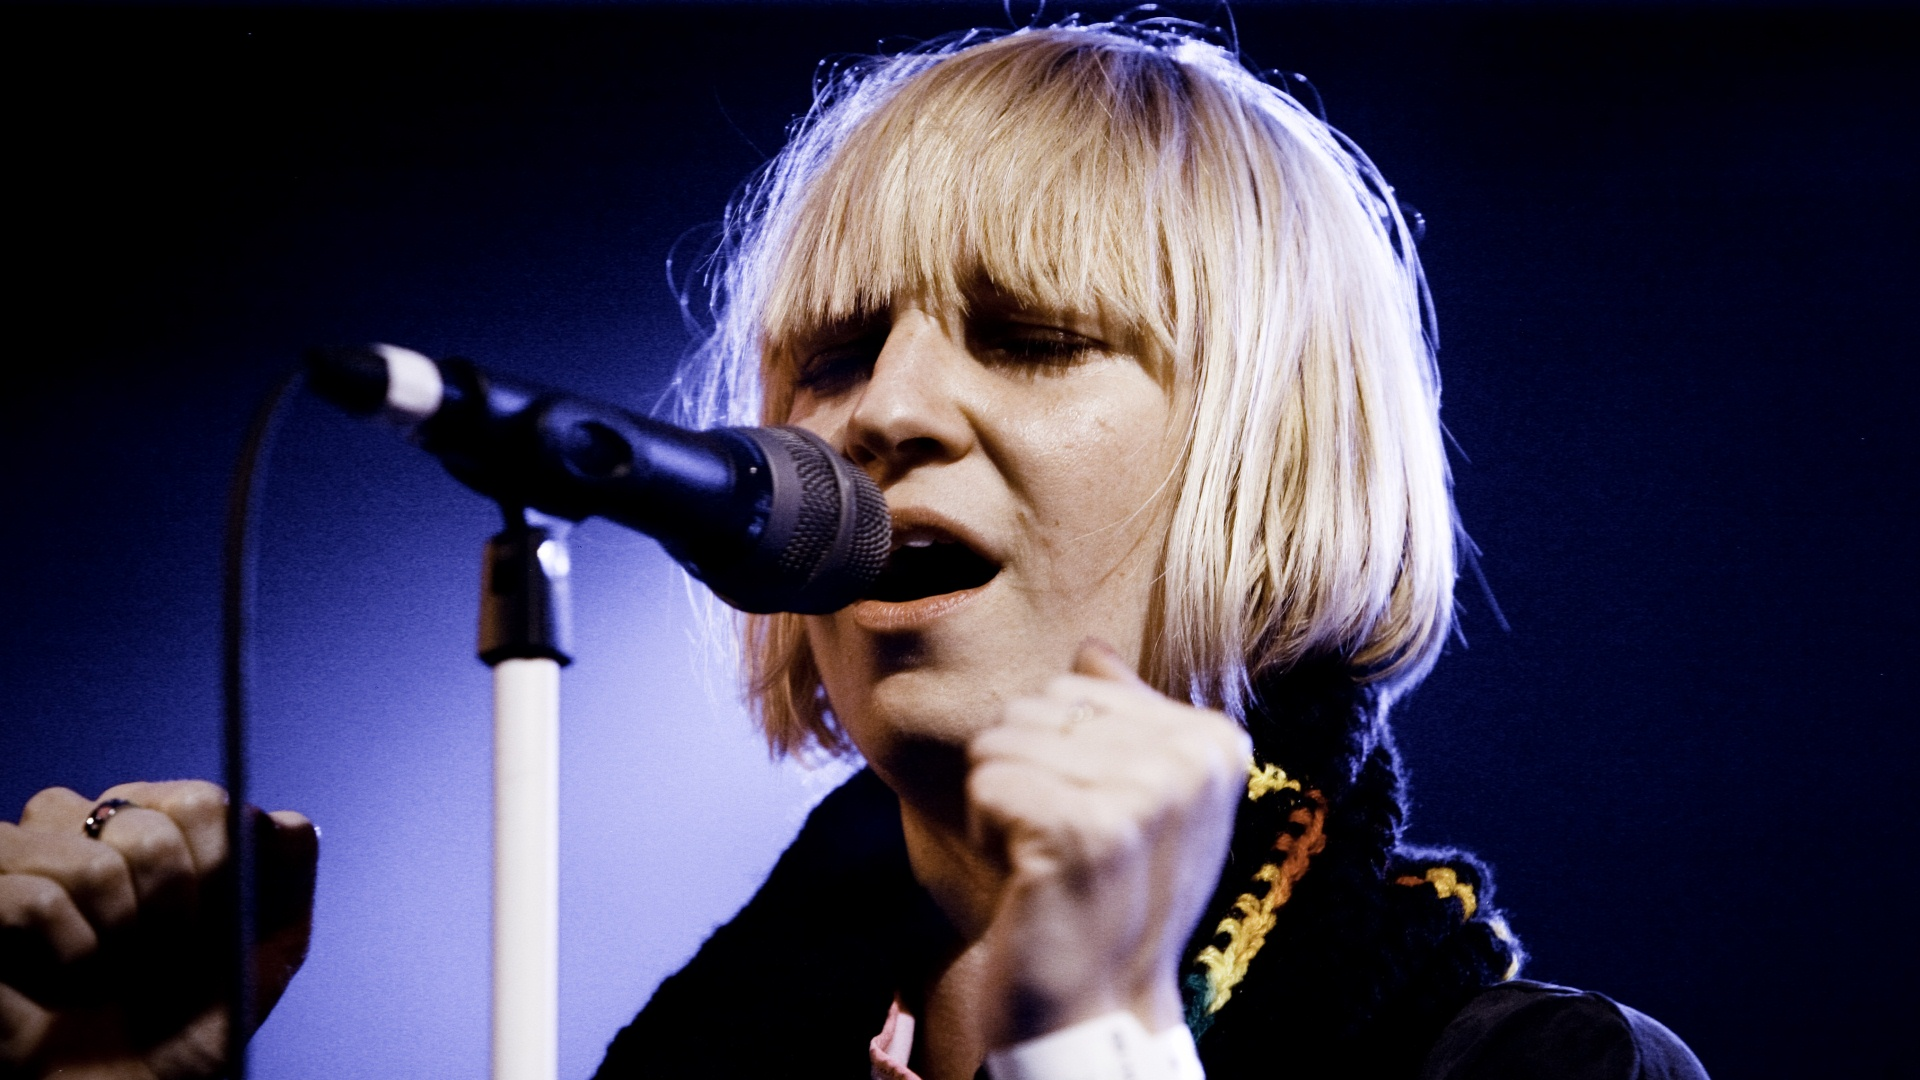 Beautiful sia wallpapers full hd pictures for Sia download